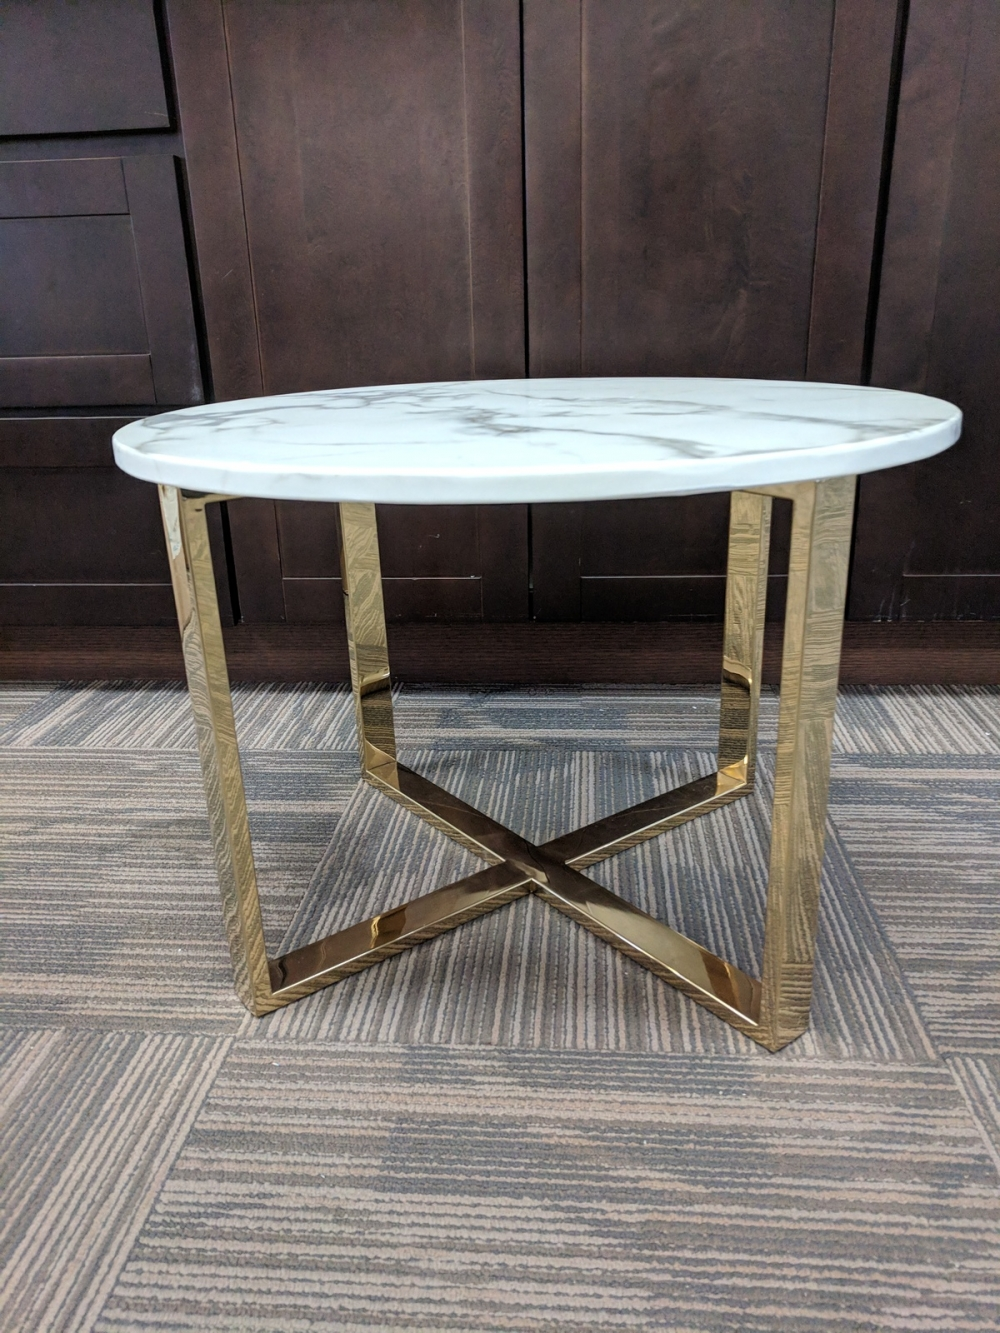 stone and gold accent table img tables edmonton dale tiffany pendant lights corner wine rack furniture legs square concrete target mirrored retro orange chair round tablecloth